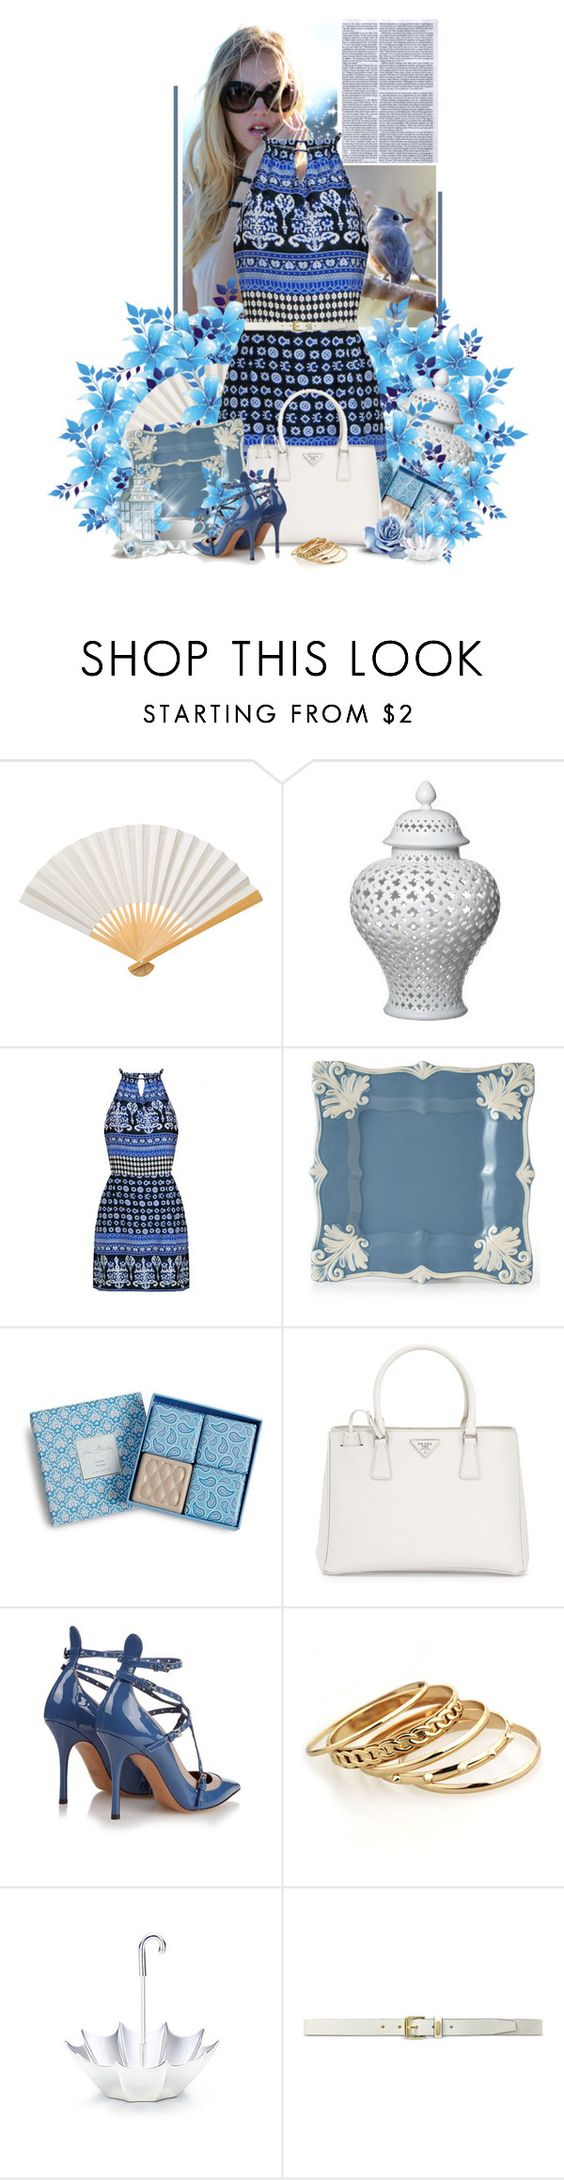 """ana"" by ana-costa-queiroz ❤ liked on Polyvore featuring beauty, Cultural Intrigue, Elodie, Vera Bradley, Prada, Arte Italica, Valentino, Tiffany & Co. and Lauren Ralph Lauren"